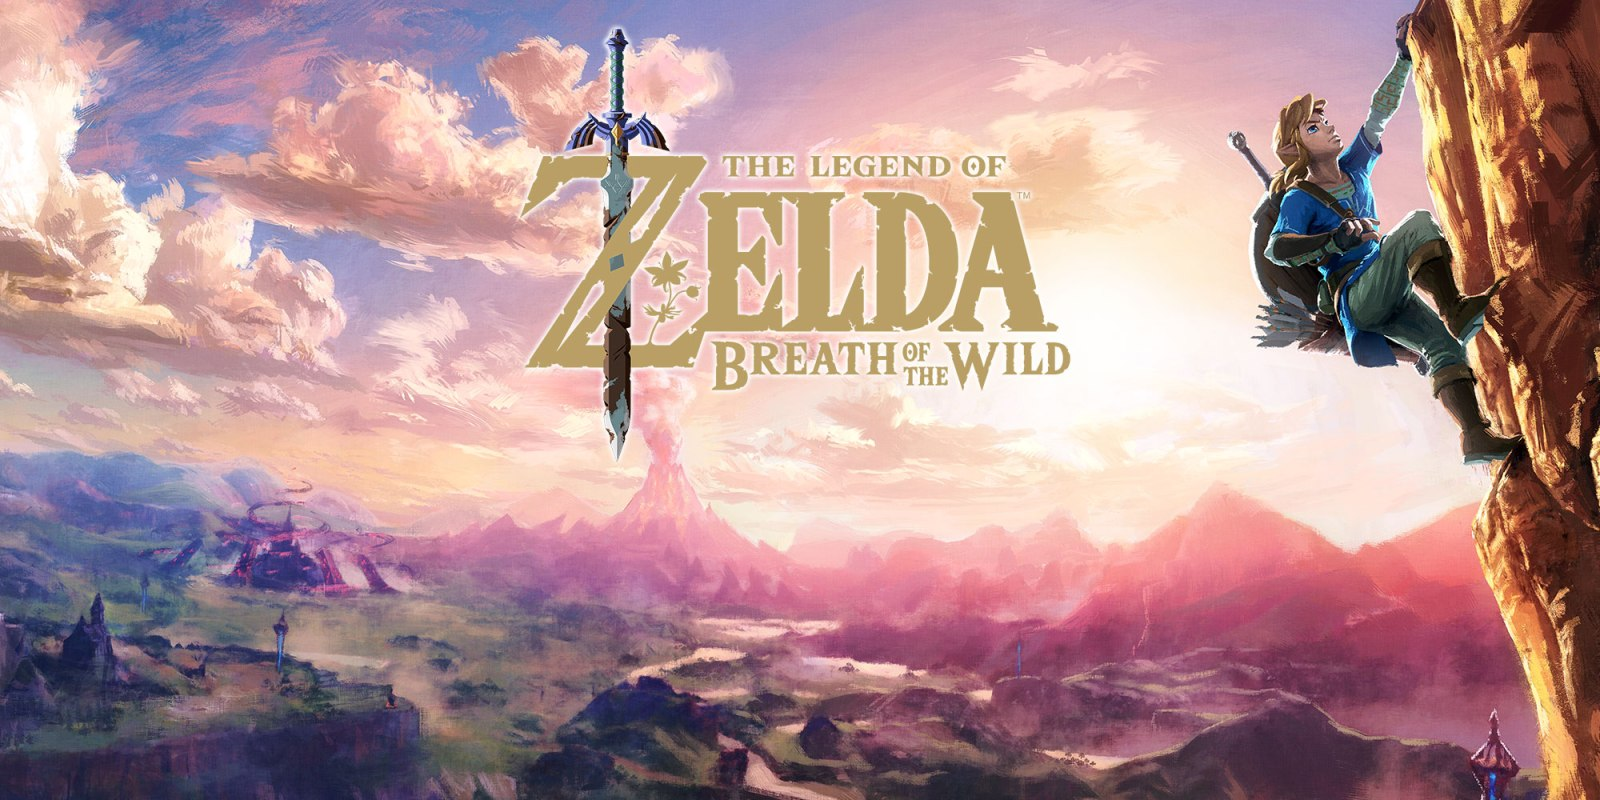 Legend Of Zelda Breath Of The Wild On Nintendo Switch From 42